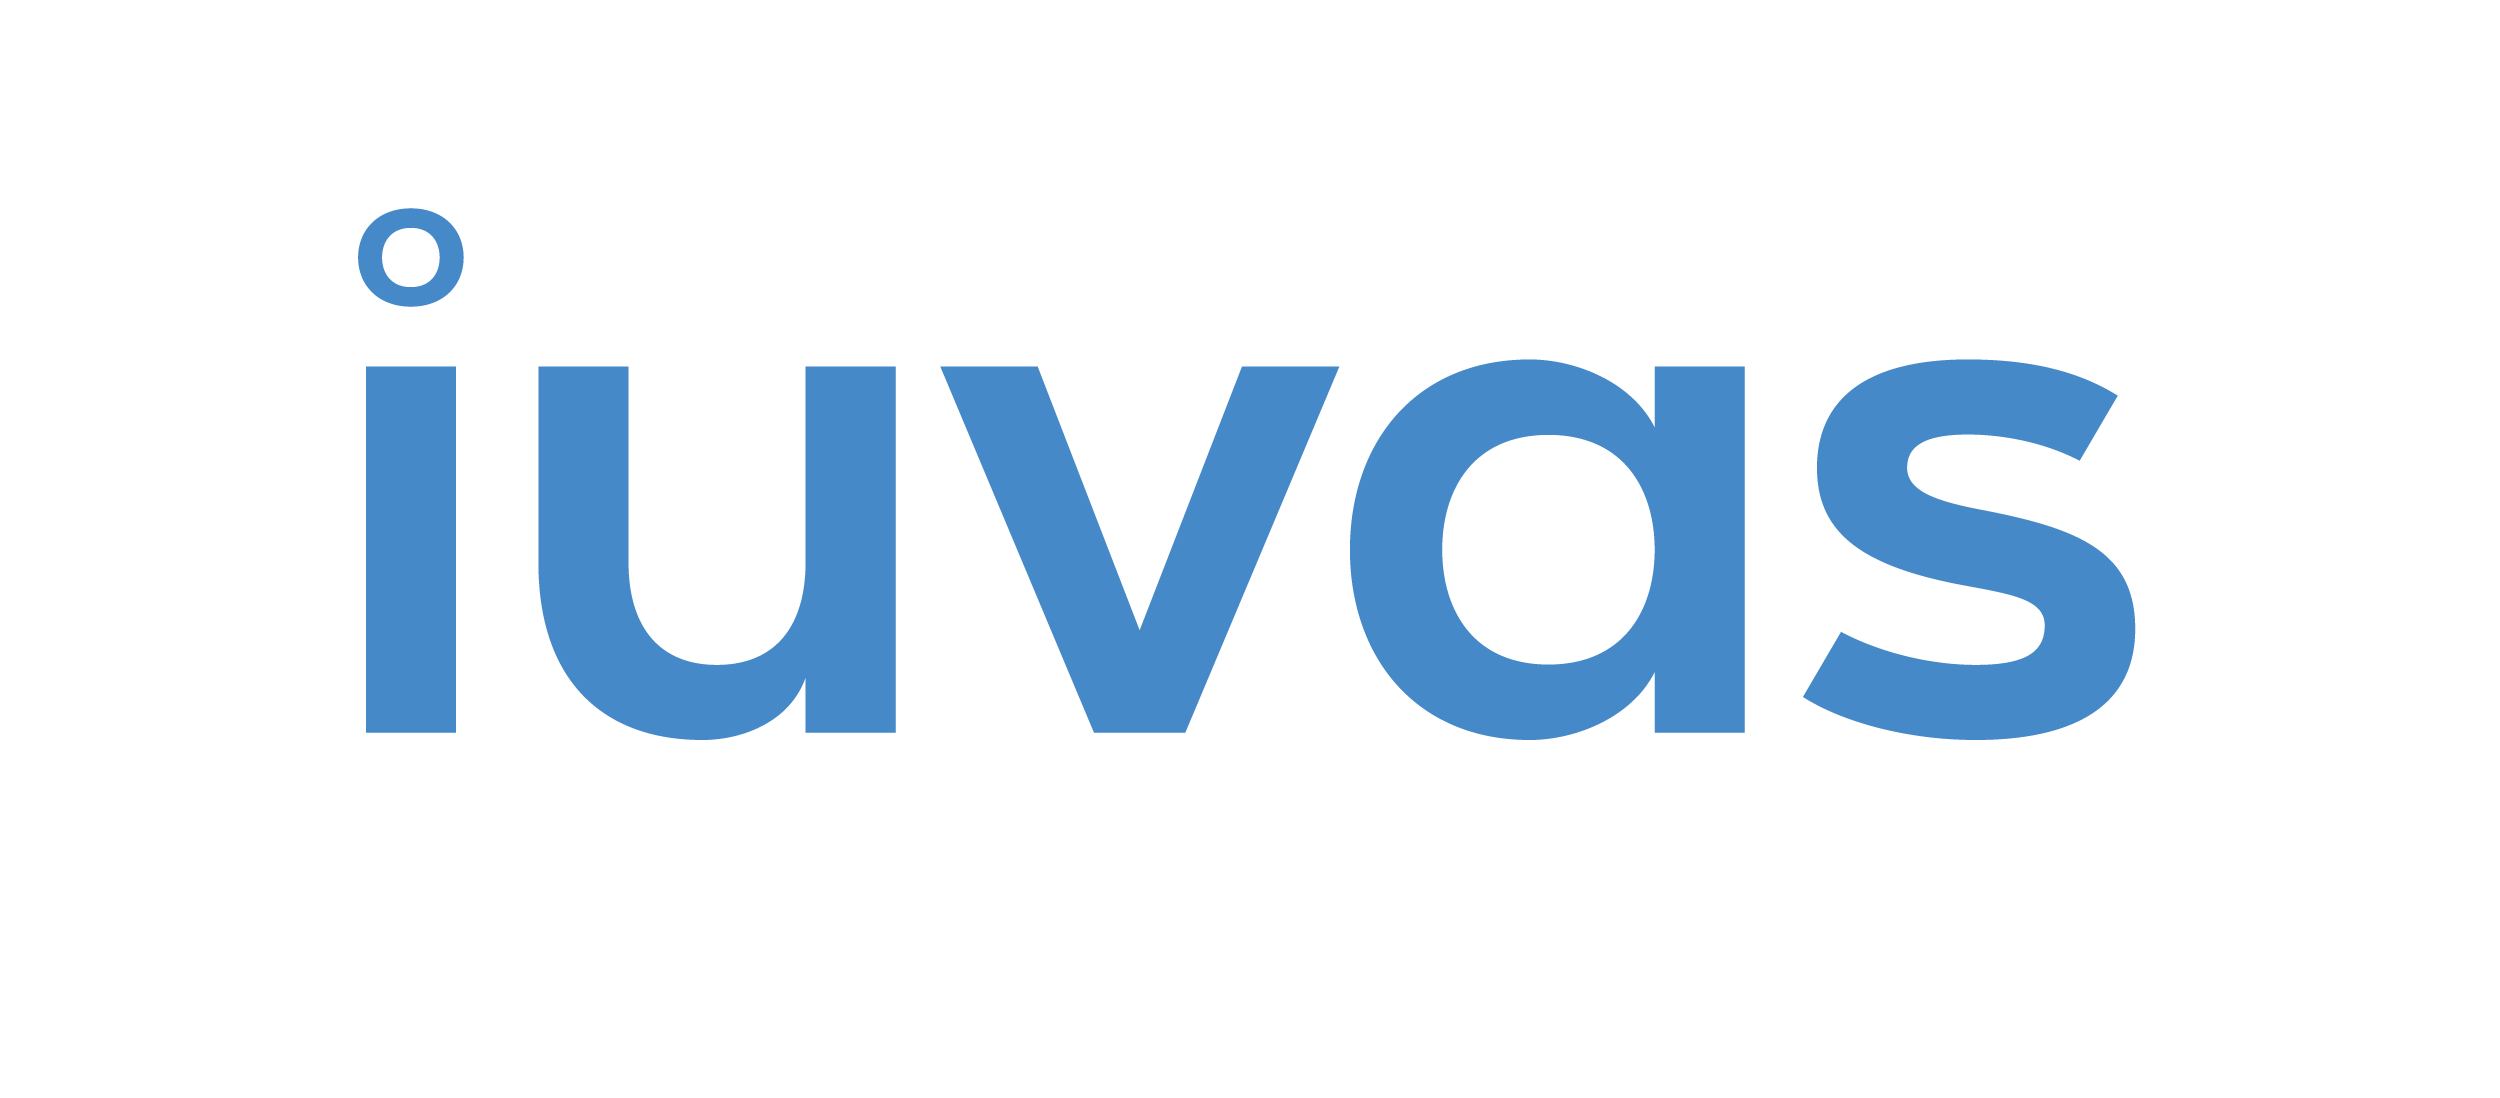 iuvas medical GmbH